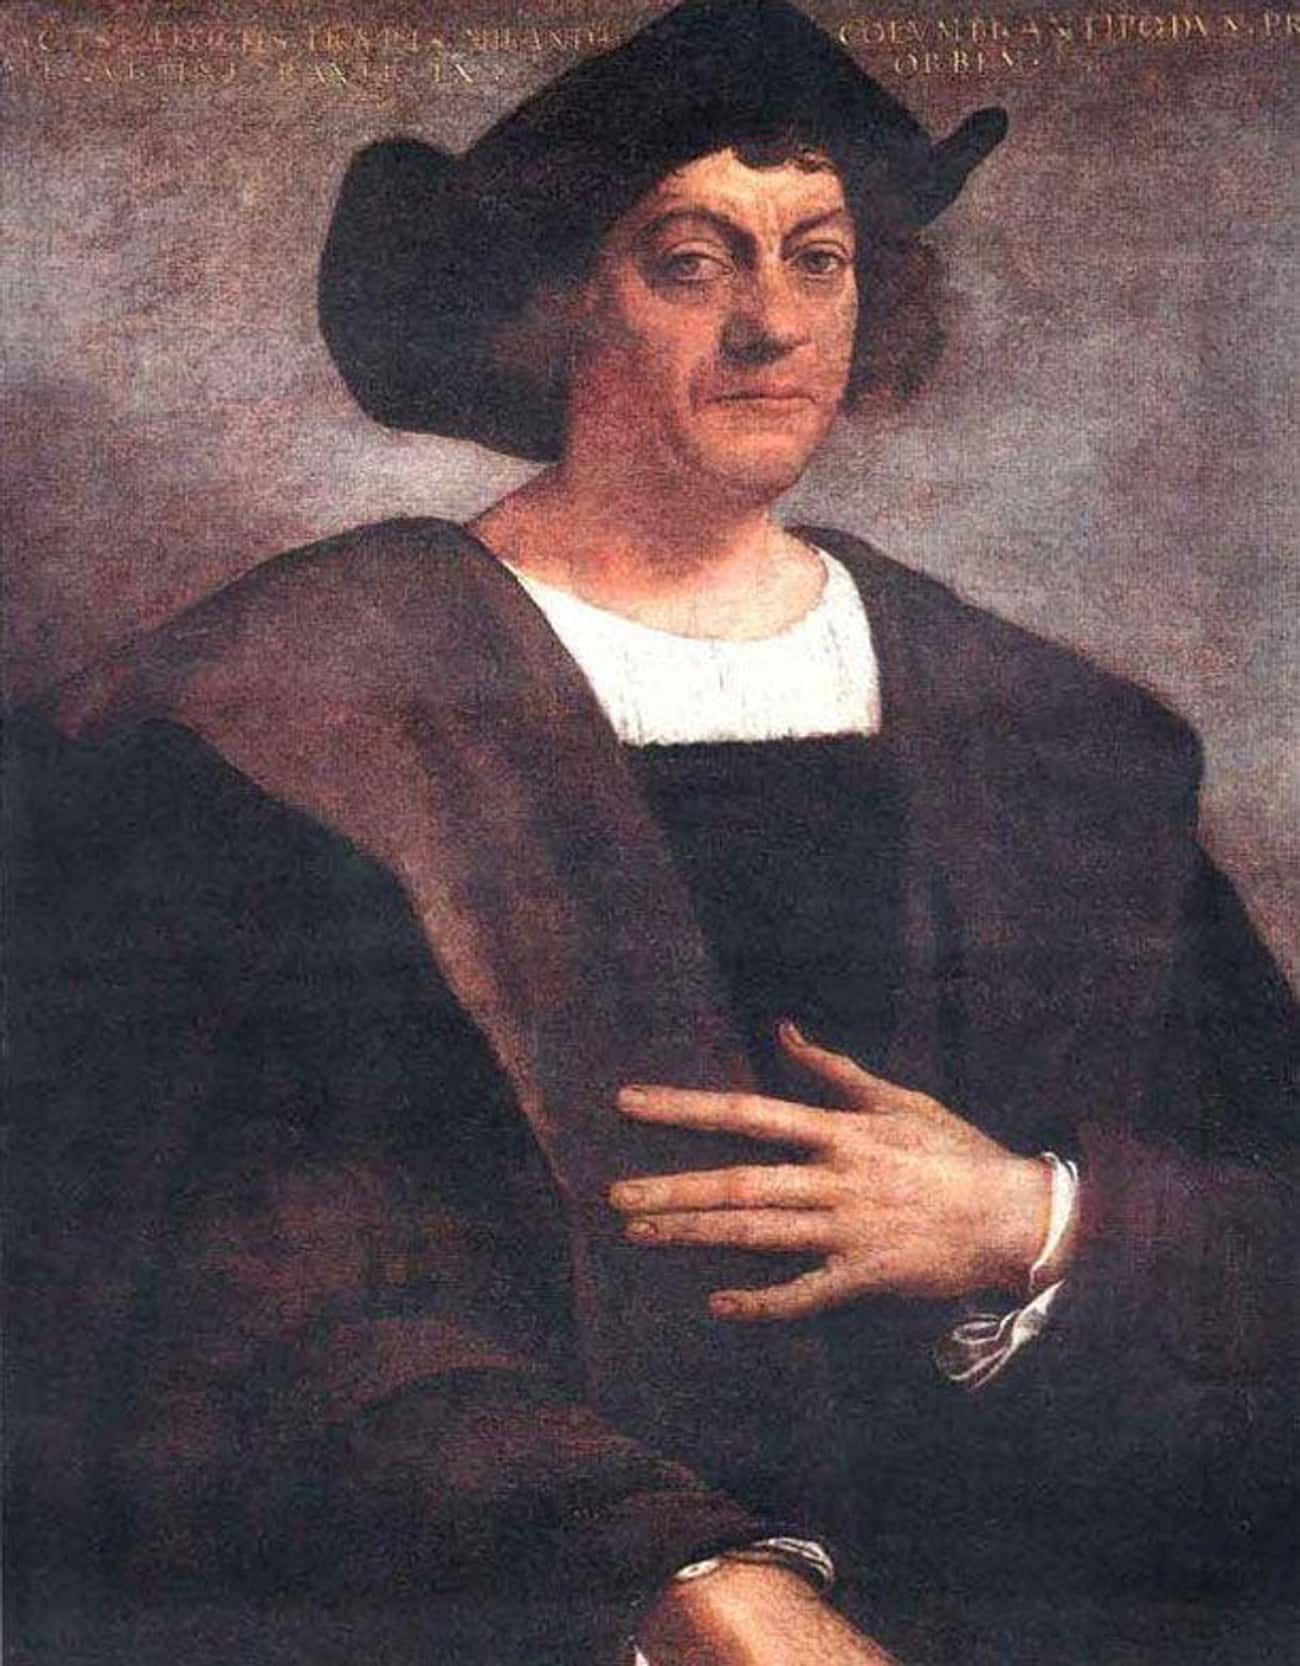 Christopher Columbus Didn' is listed (or ranked) 3 on the list Historical Figures Who Are Nothing Like The People They're Painted To Be